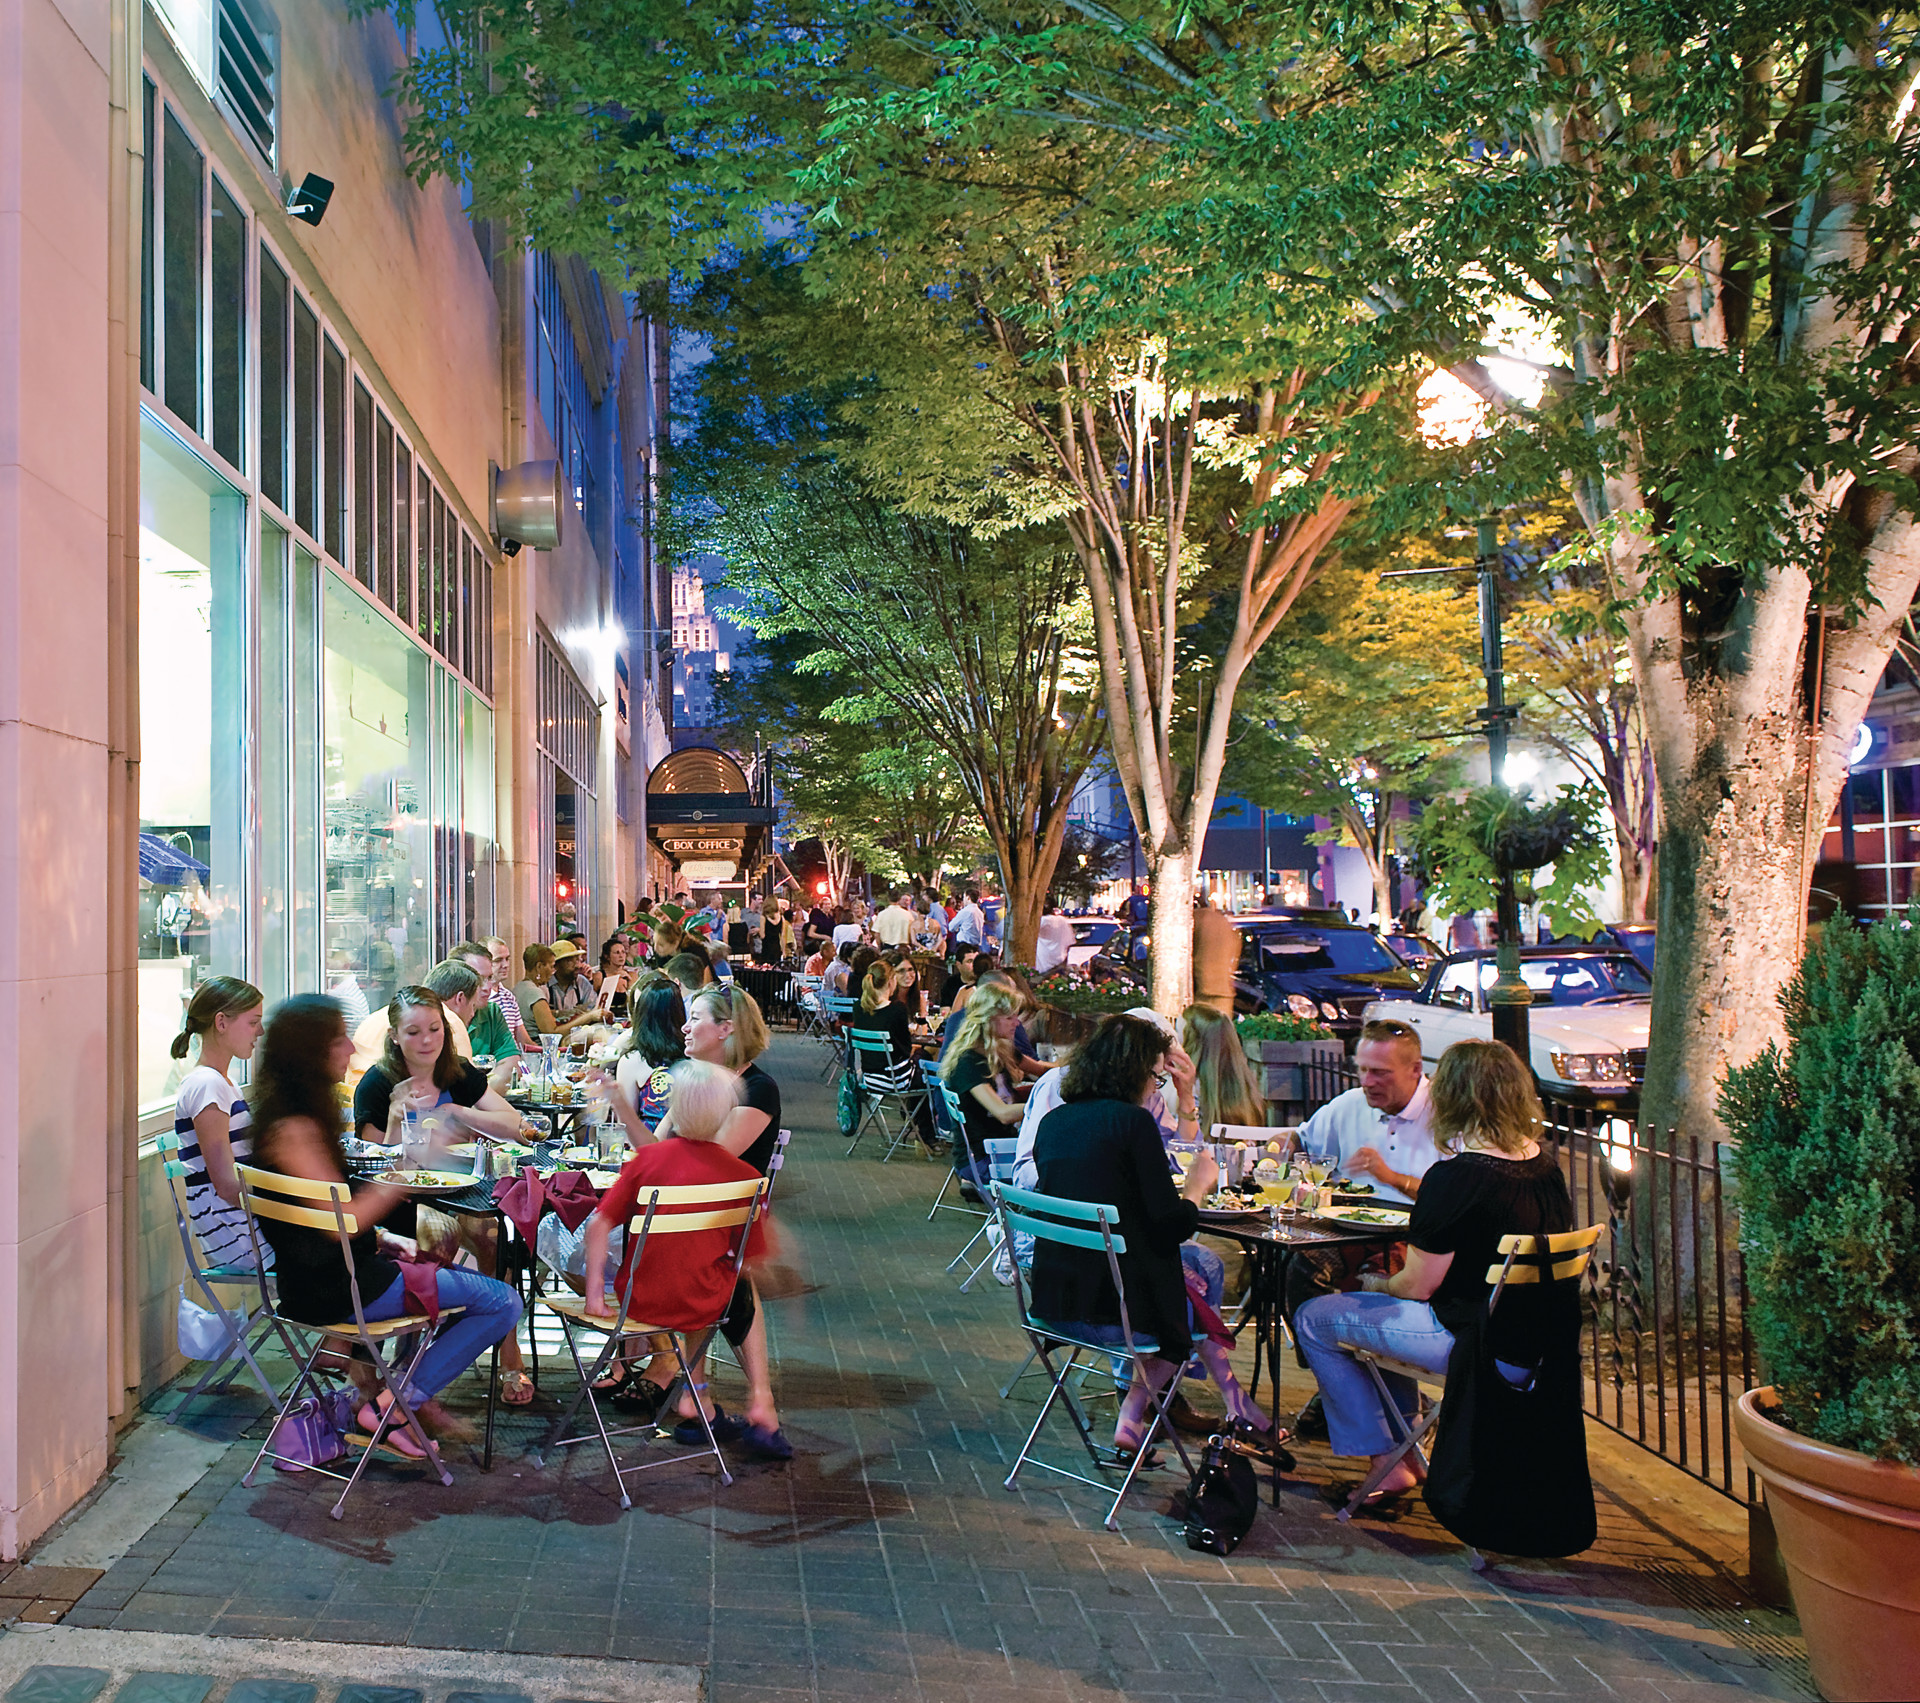 Sidewalk dining in downtown Winston-Salem. (J. Sinclair Photography for Visit Winston-Salem)